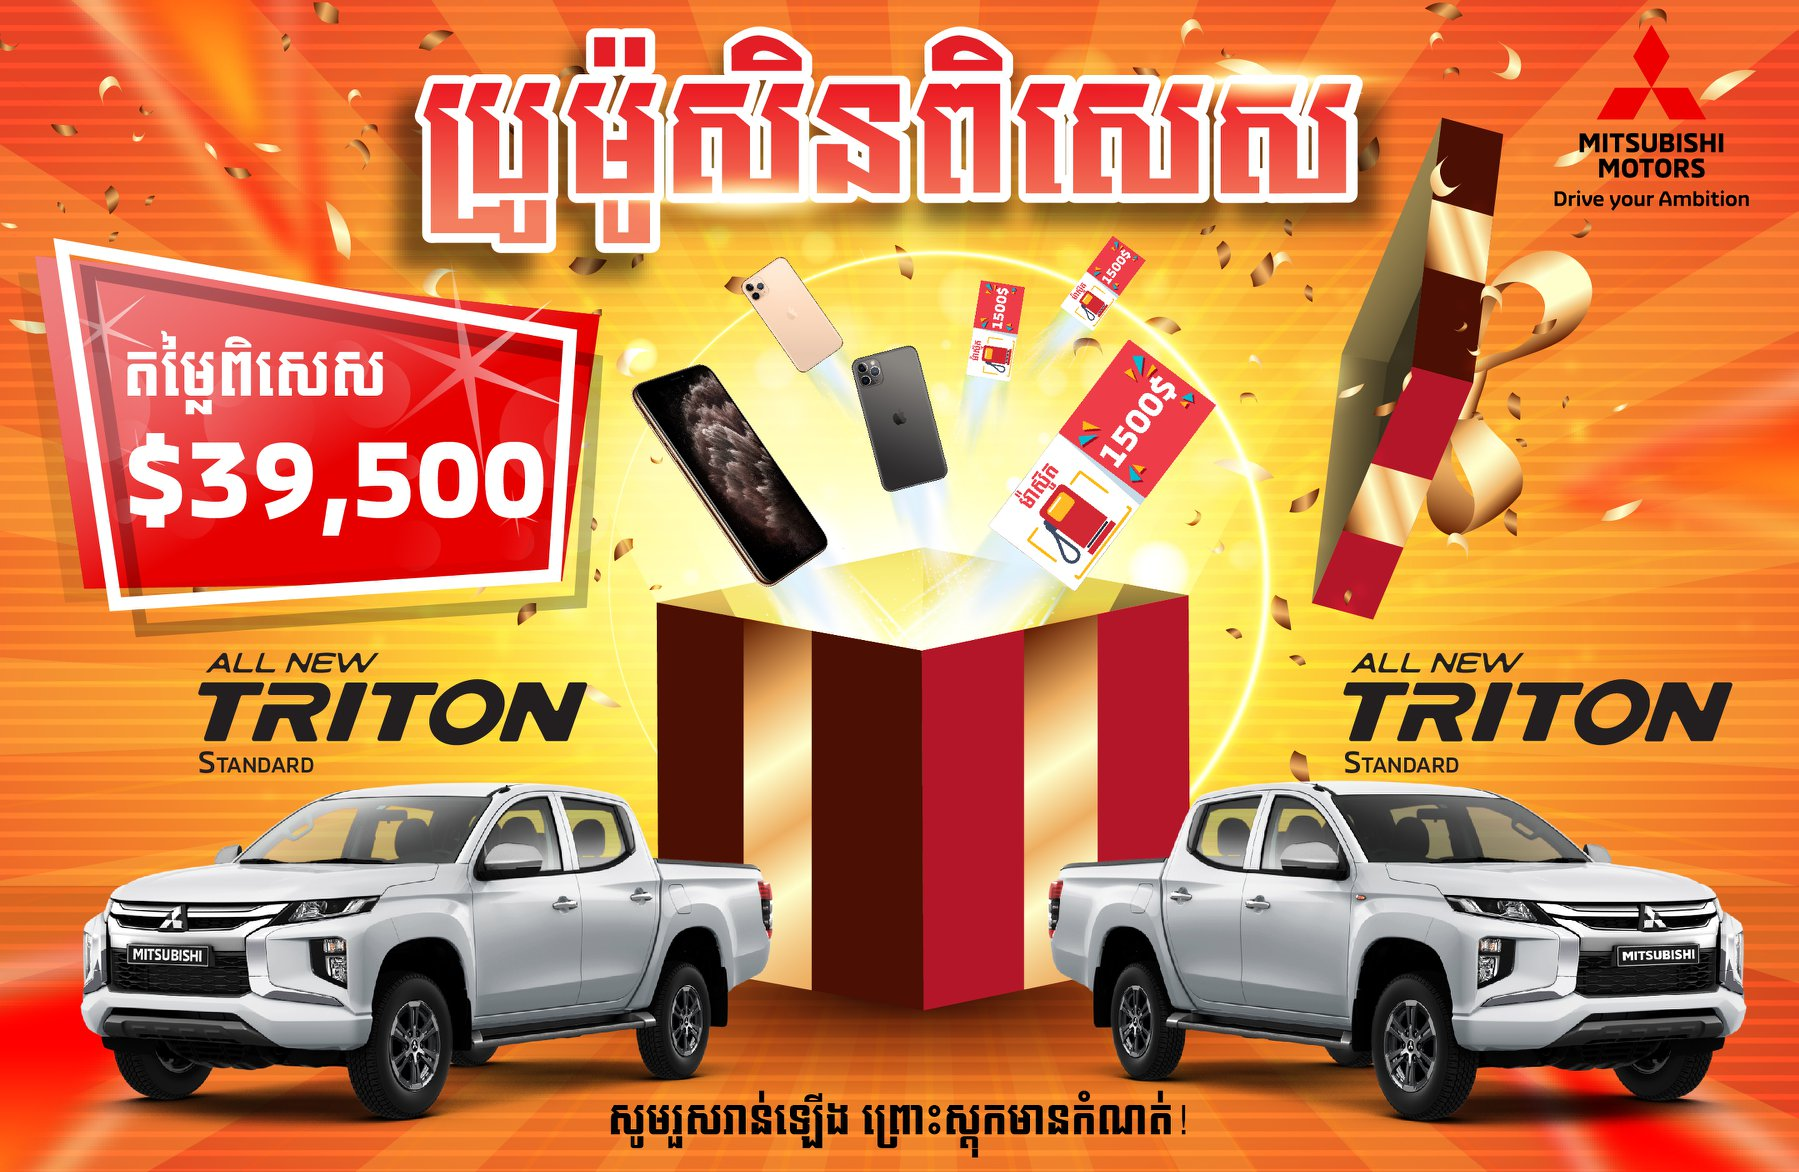 Special Promotion for Triton Standard